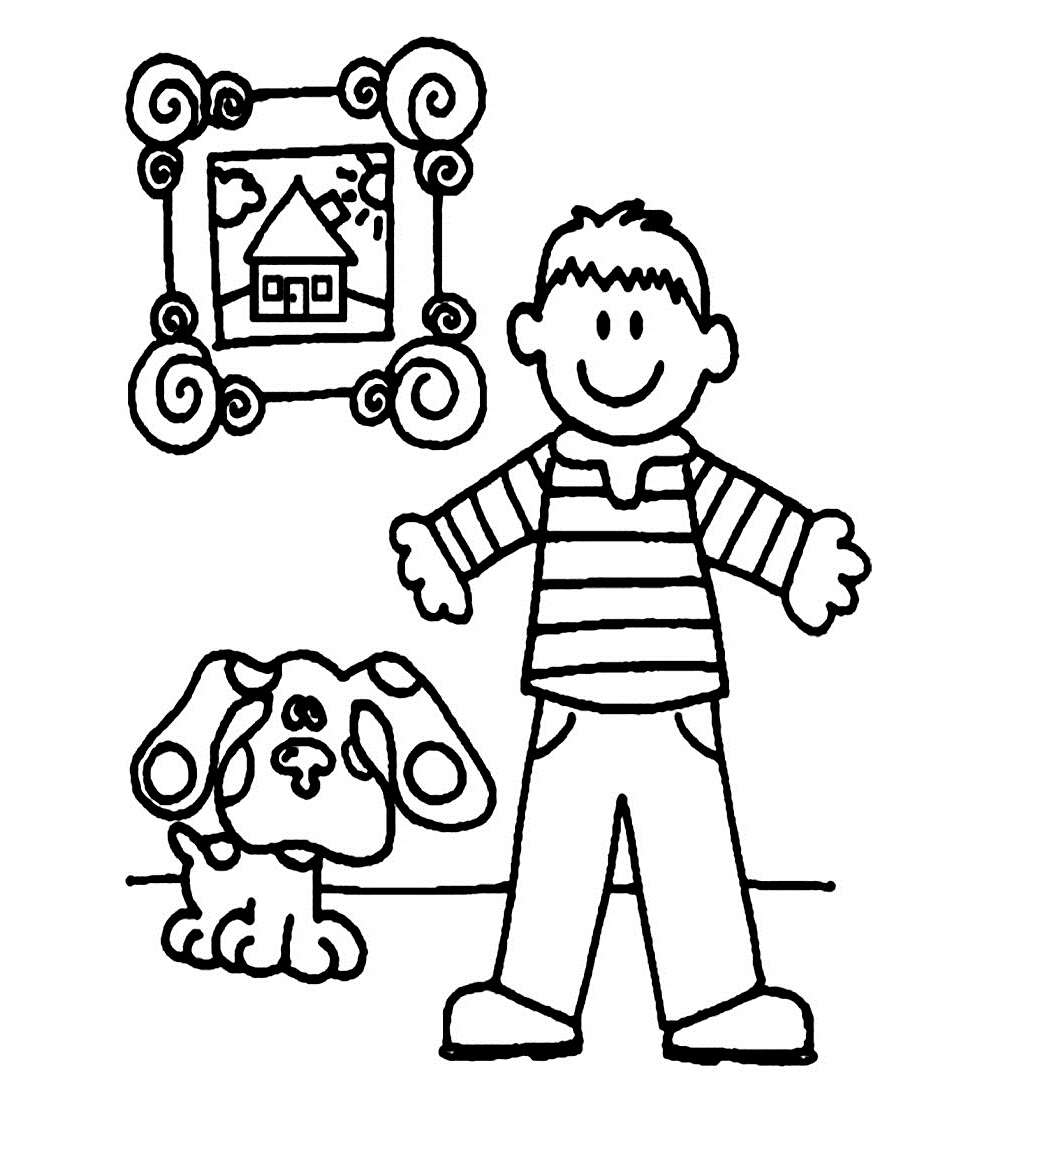 printable coloring pages for boys boy coloring pages to download and print for free boys for pages coloring printable